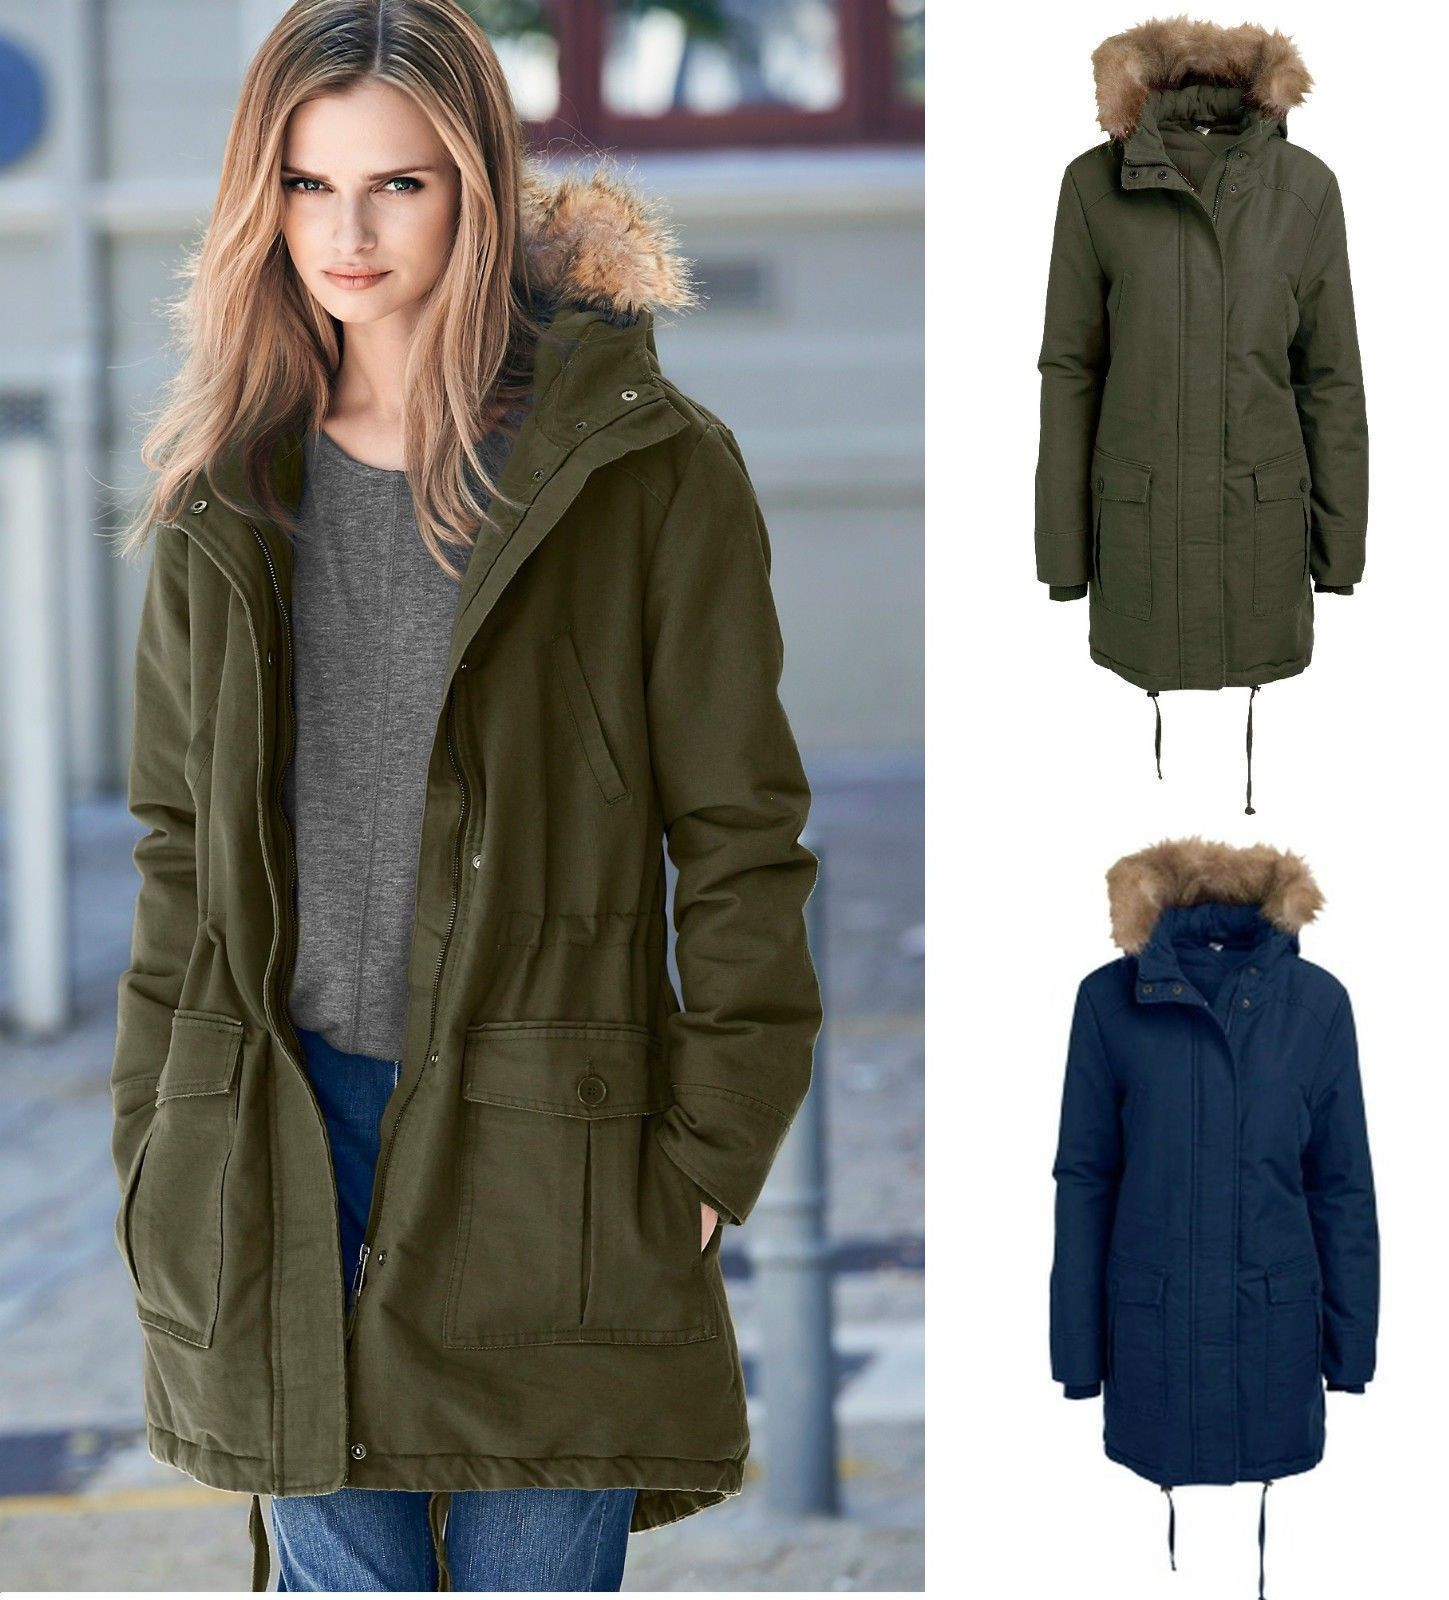 ladies-long-parka-jacket | Parka Jacket | Pinterest | Models, Lady ...